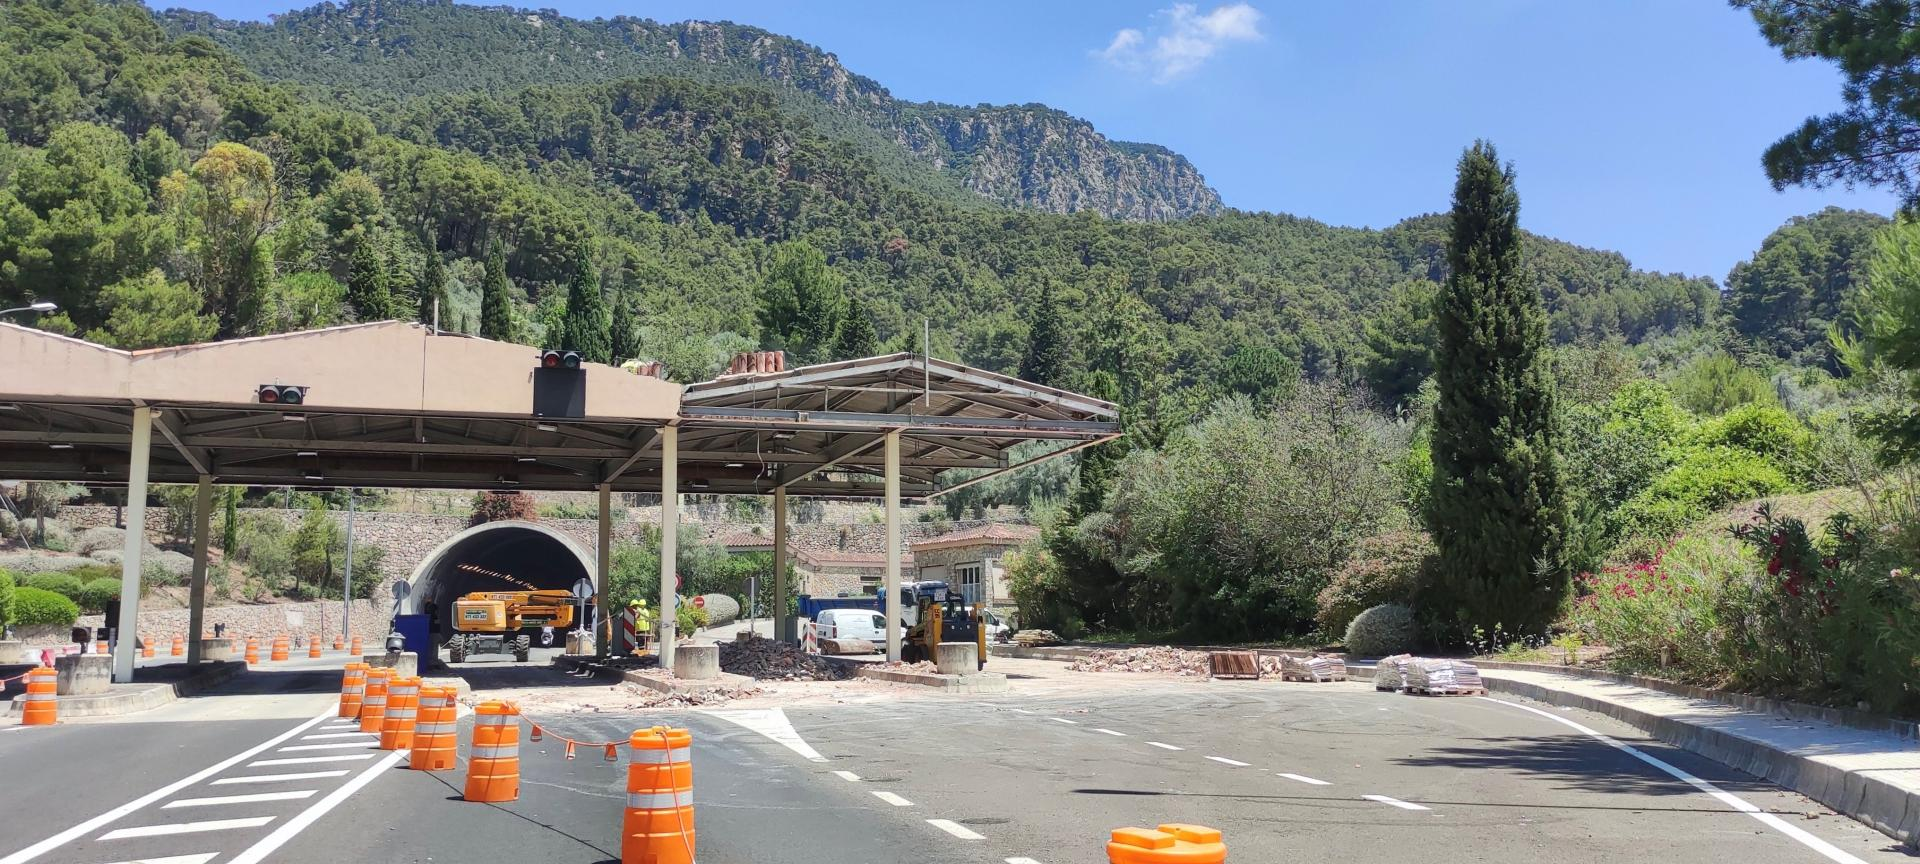 removing the tunnel toll gates